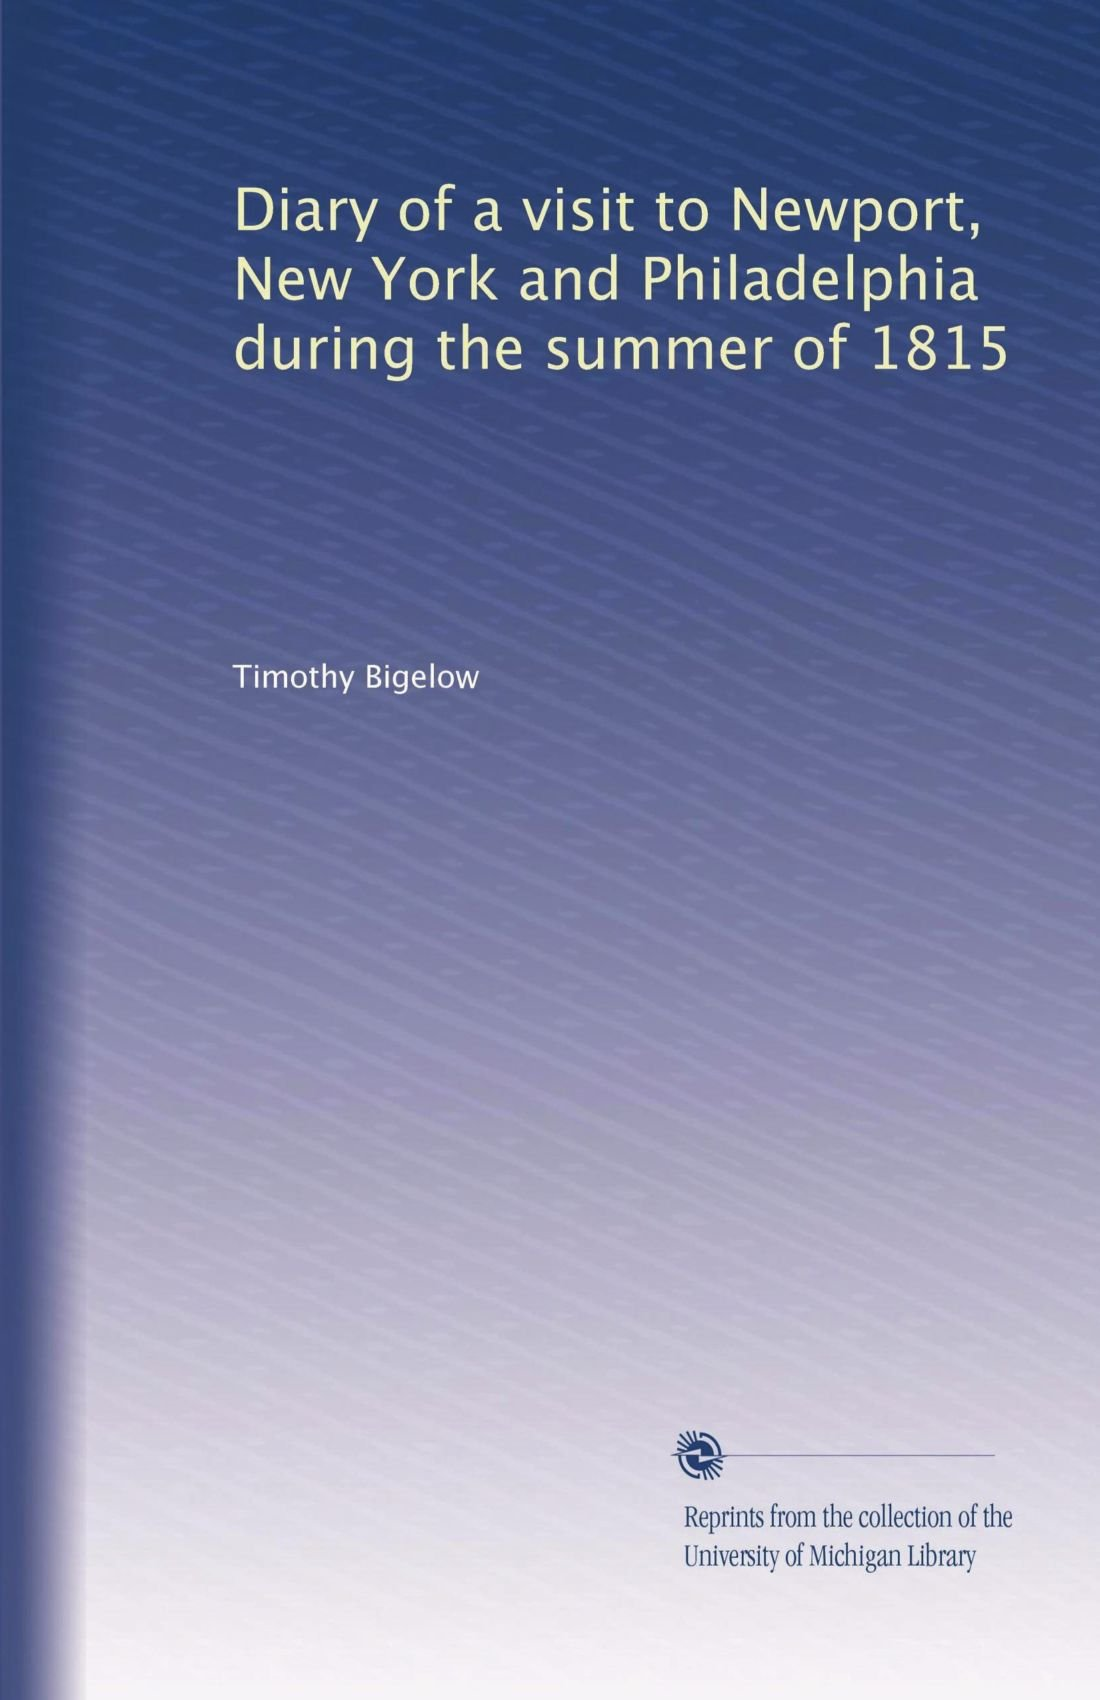 Diary of a visit to Newport, New York and Philadelphia during the summer of 1815 PDF